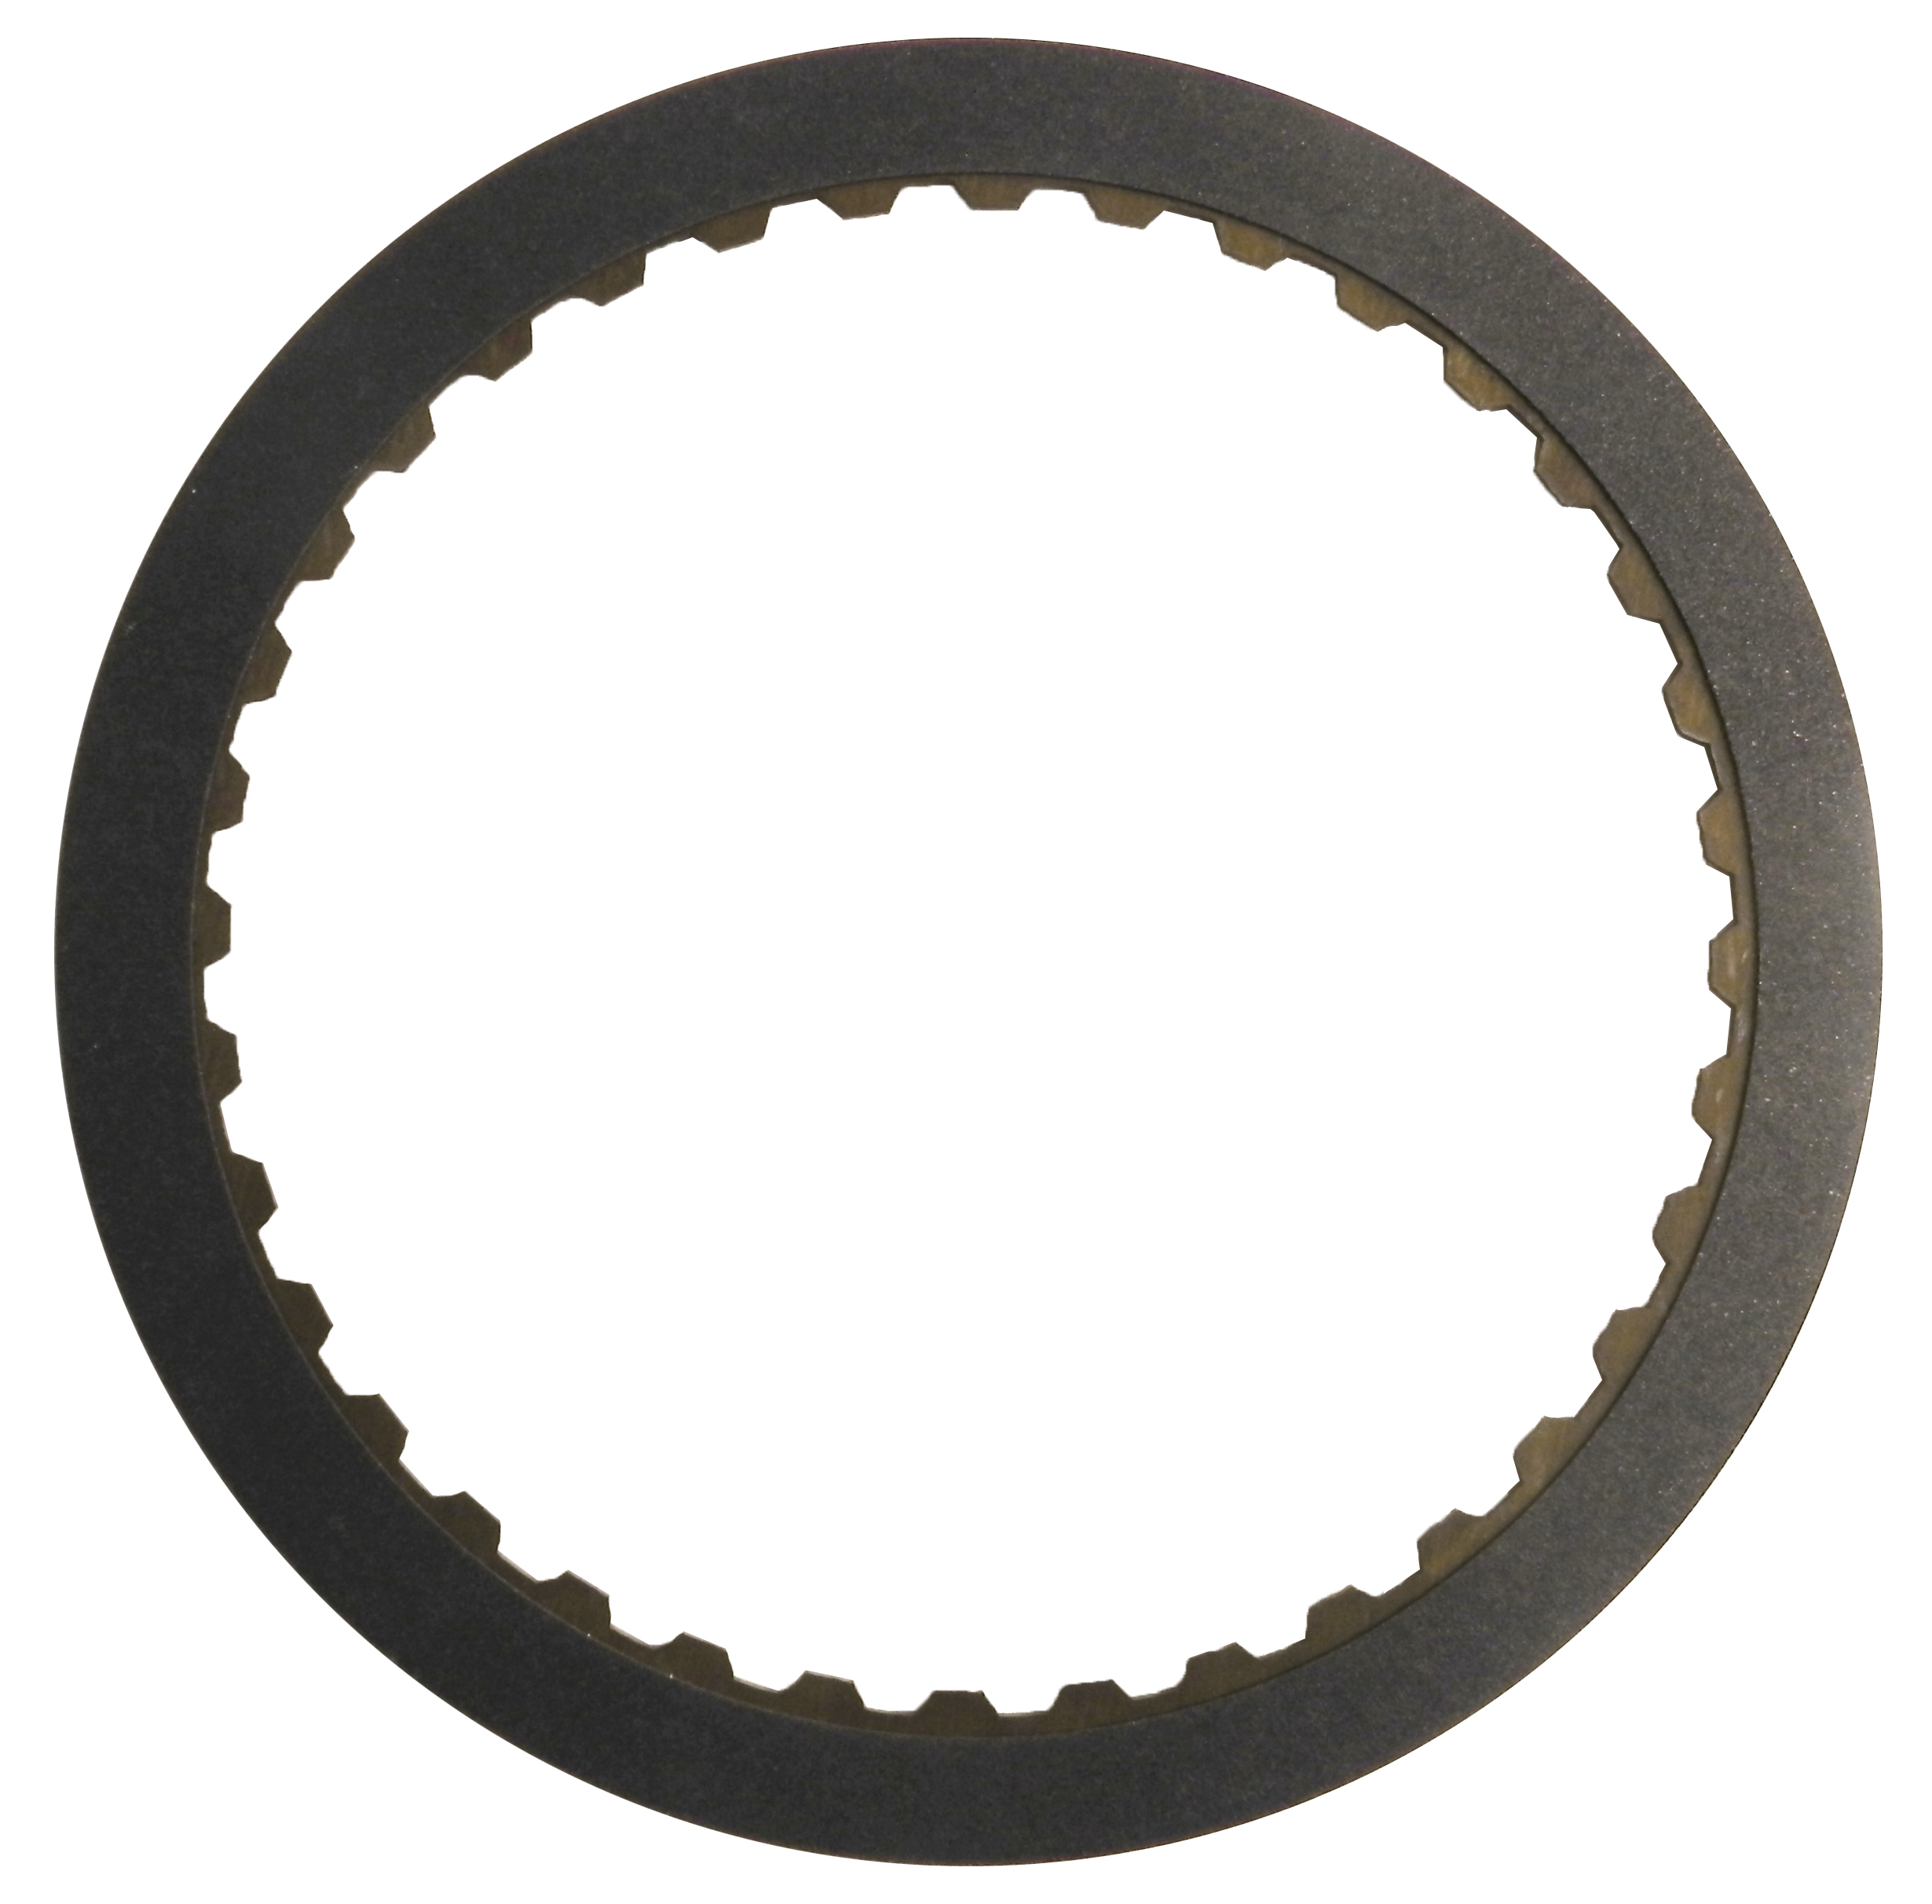 R564075 | 2007-ON Friction Clutch Plate OE Replacement 3-5, Reverse (Waved)